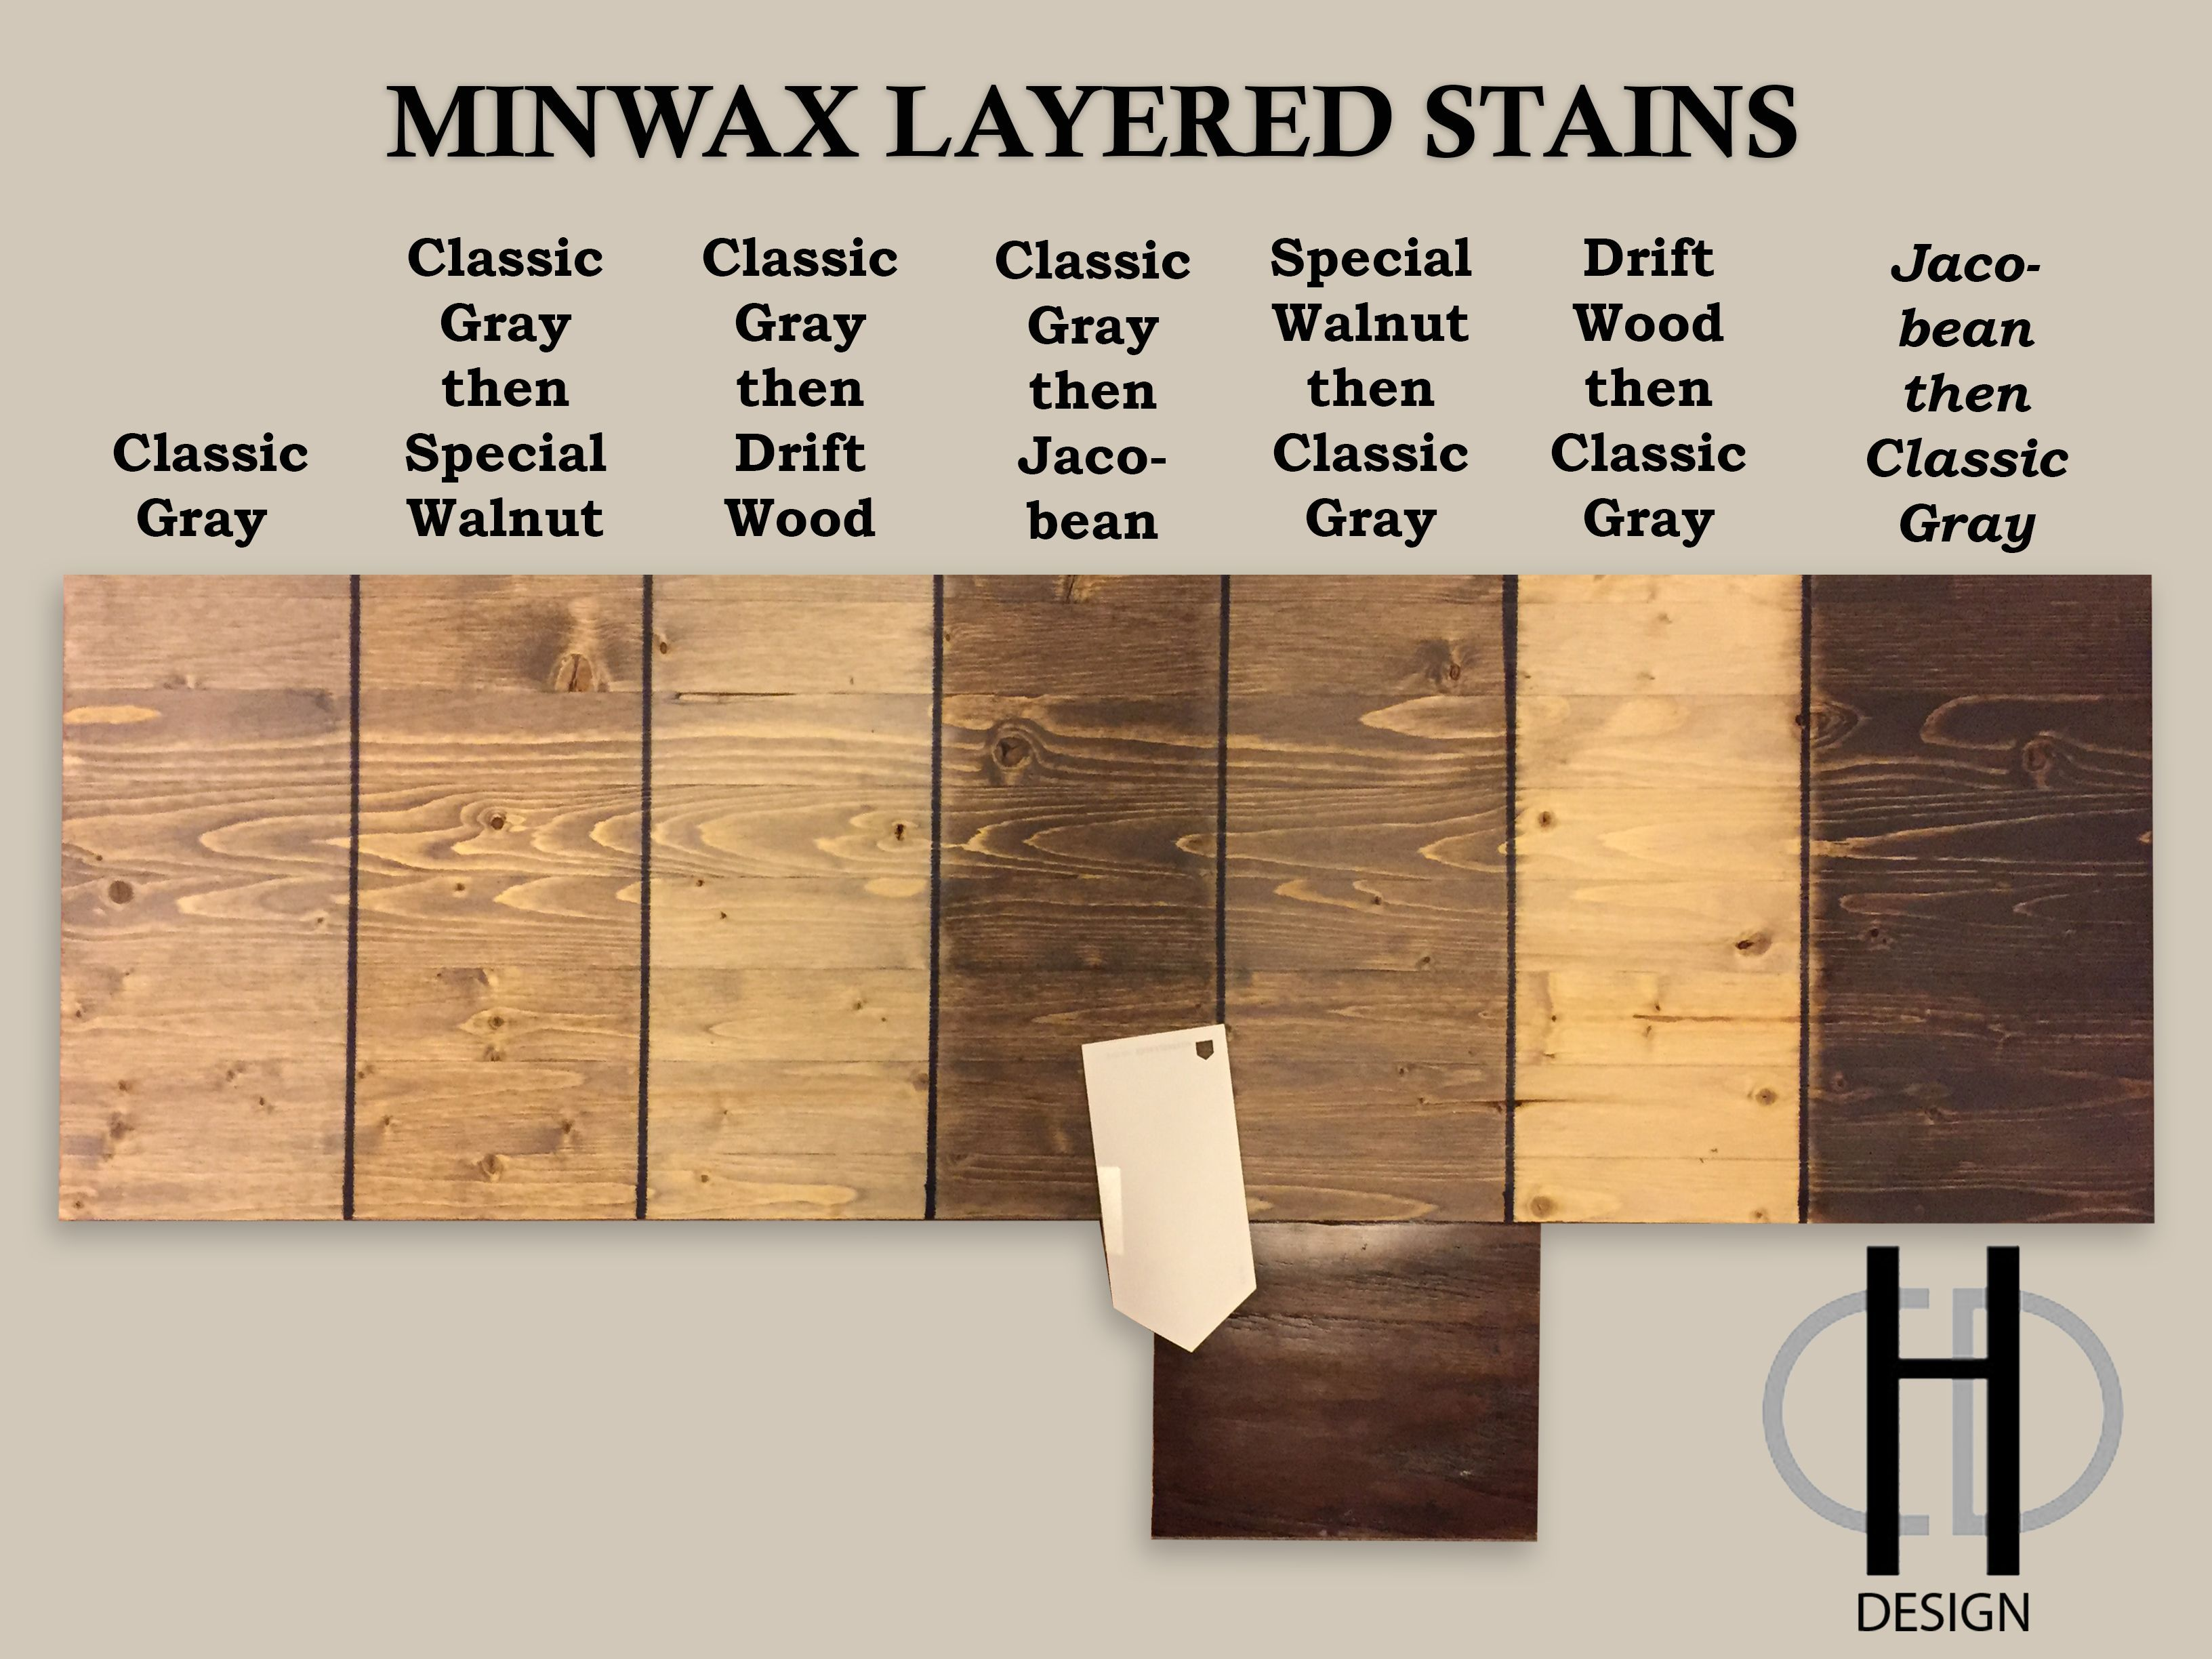 Google Image Result For Https I Pinimg Com Originals 22 0a 5d 220a5d1d9d3fe77eb2bea2a119df0818 Jpg In 2020 Floor Stain Colors Oak Floor Stains Staining Wood